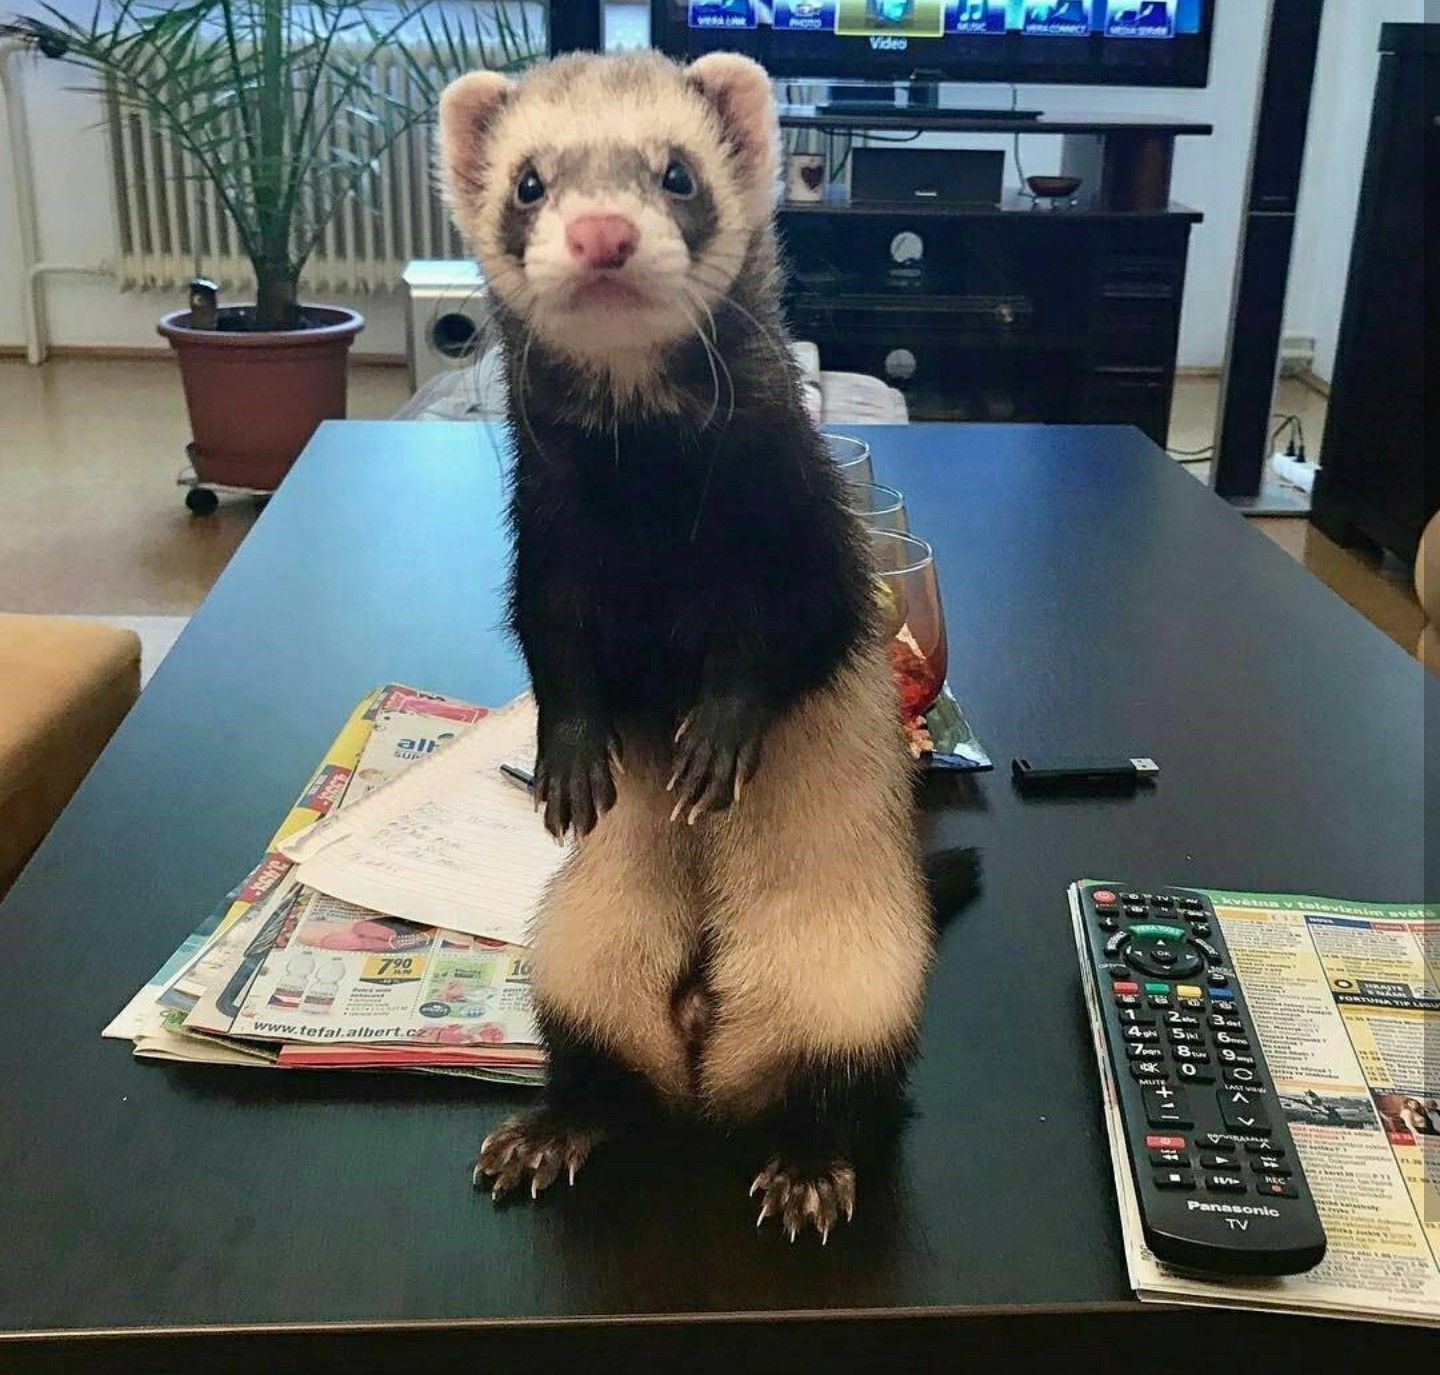 Such a cute little ferret! Never seen an ugly one, they are so adorable! I  love my baby to pieces!